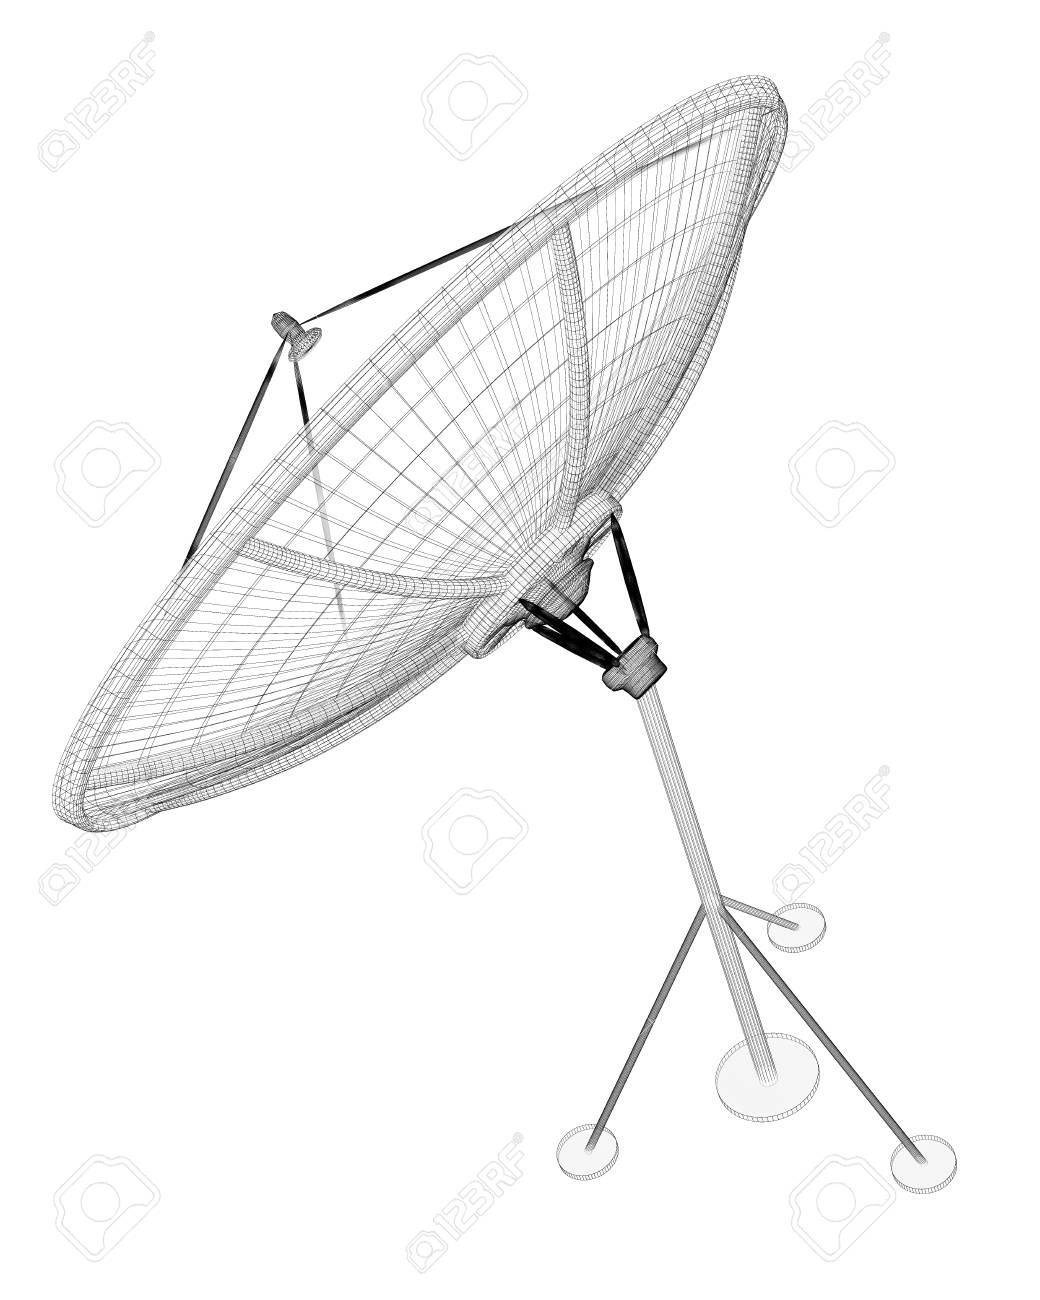 satellite tracking system, satellite dish on the background